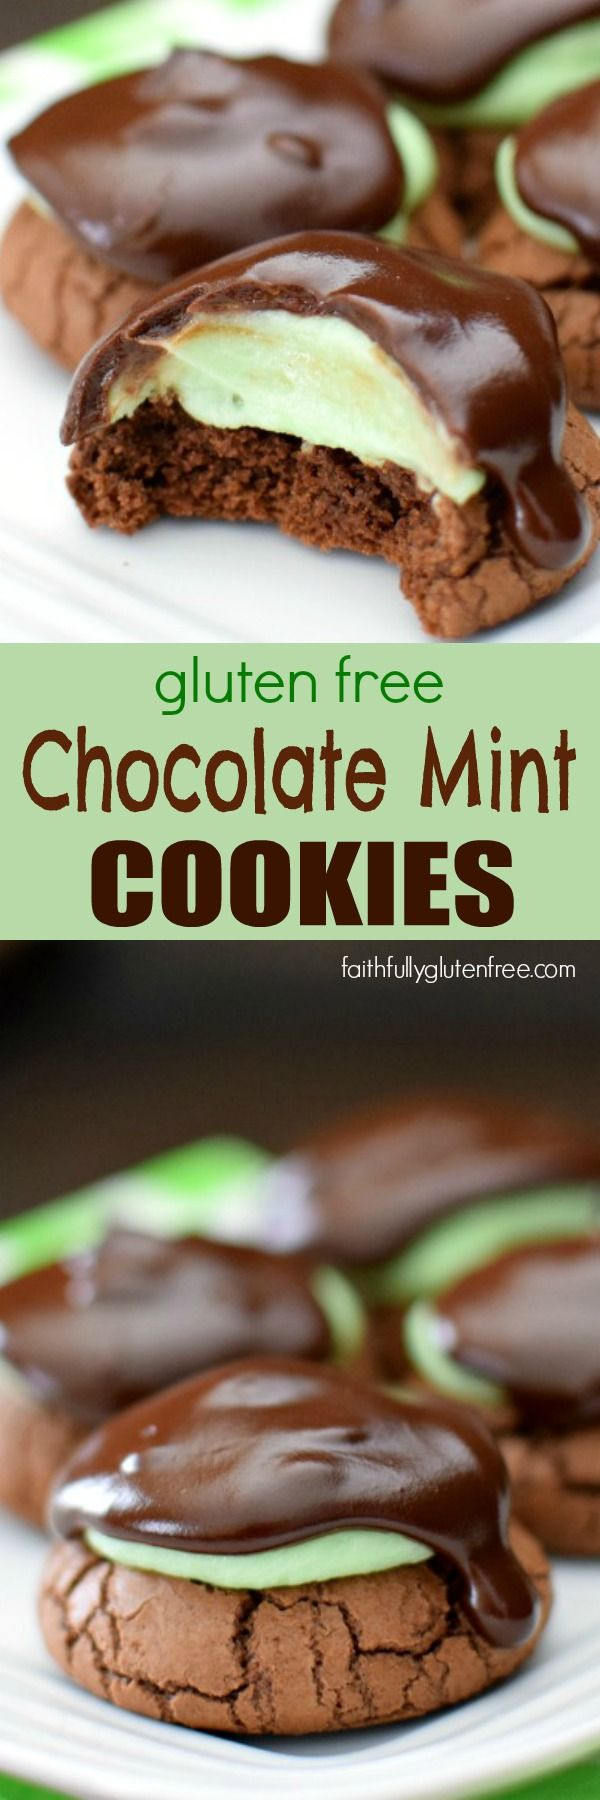 Gluten Free Chocolate Mint Cookies Recipe Gluten Free